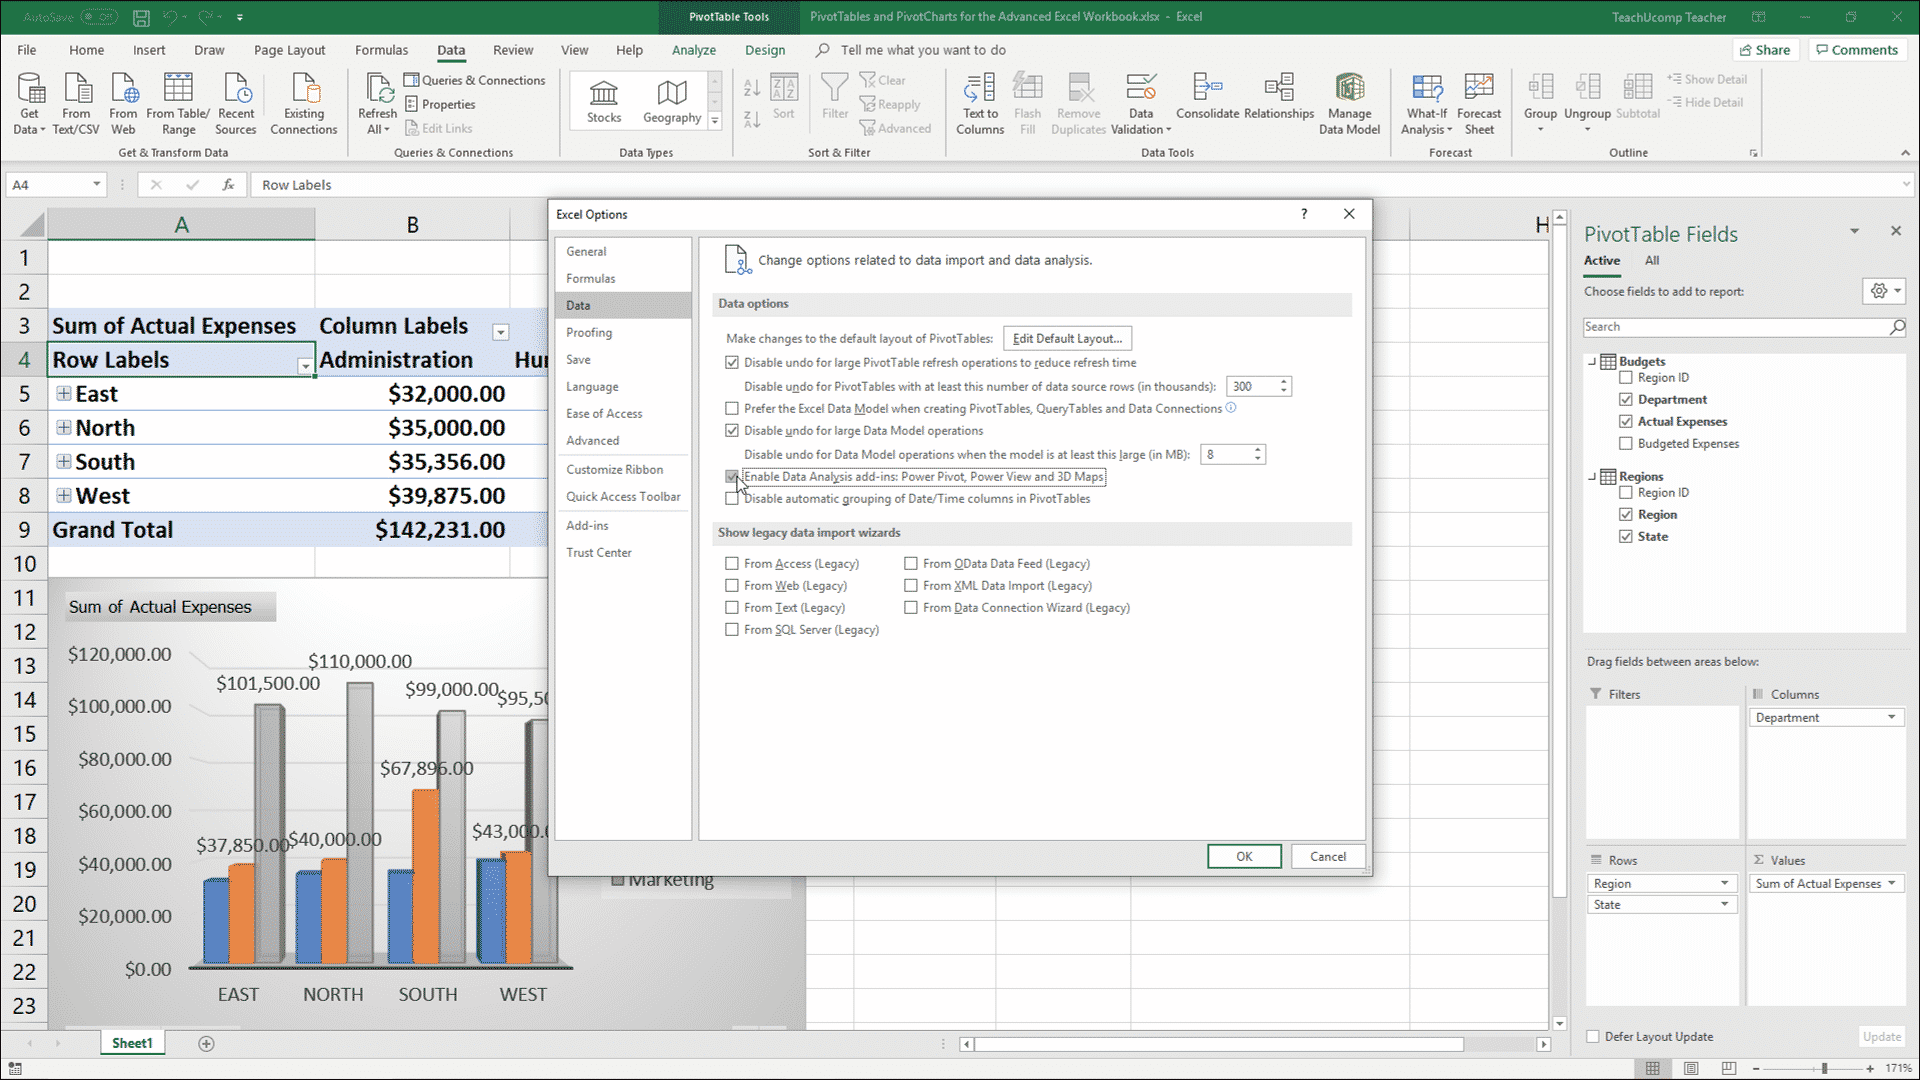 Enable Power Pivot in Excel - Instructions - TeachUcomp, Inc.